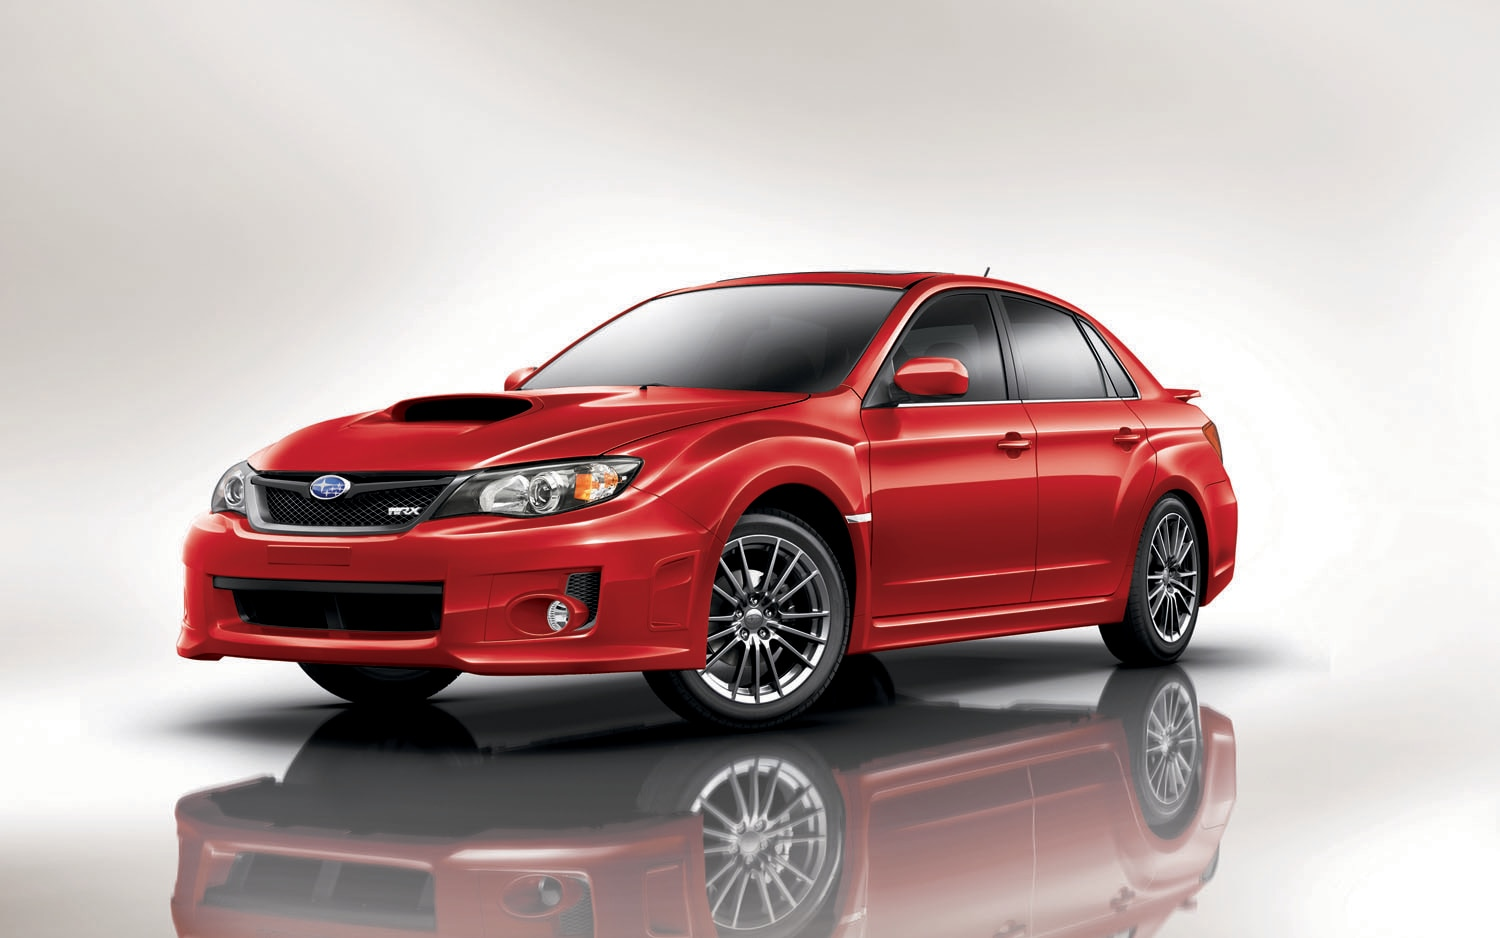 2011 Subaru WRX 4 Door Front Three Quarter1